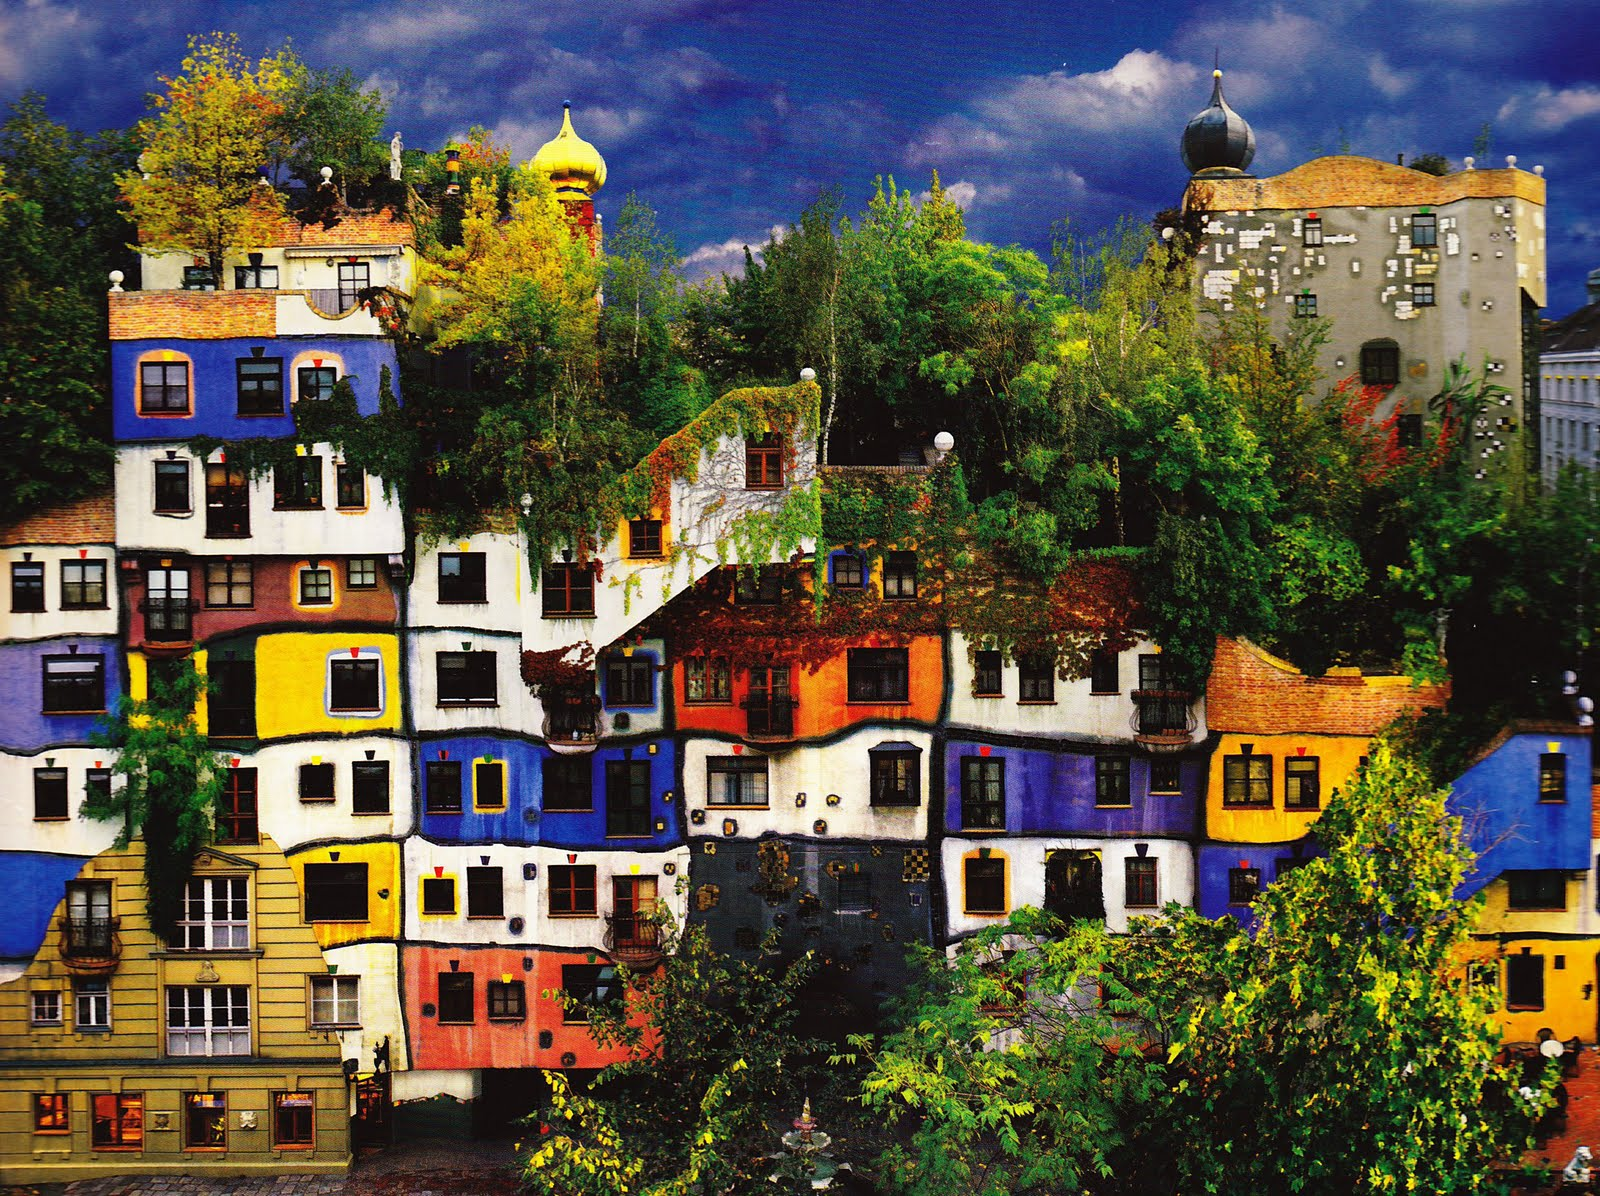 https://powerofh.files.wordpress.com/2014/11/friedensreich-hundertwasser1.jpg